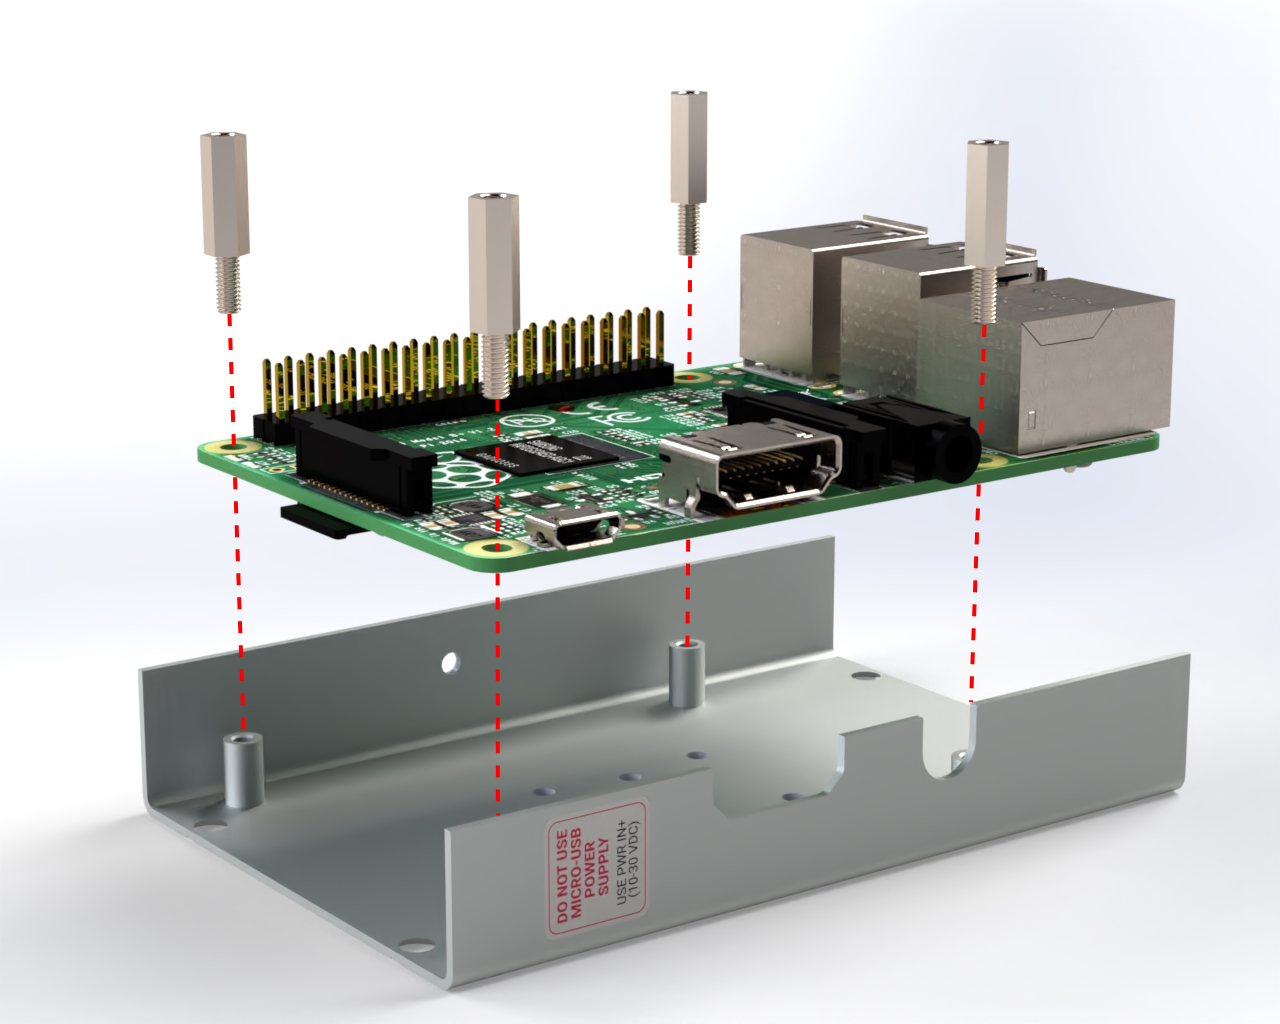 Metal spacers will fix the Raspberry Pi to the bottom part of the aluminium case.